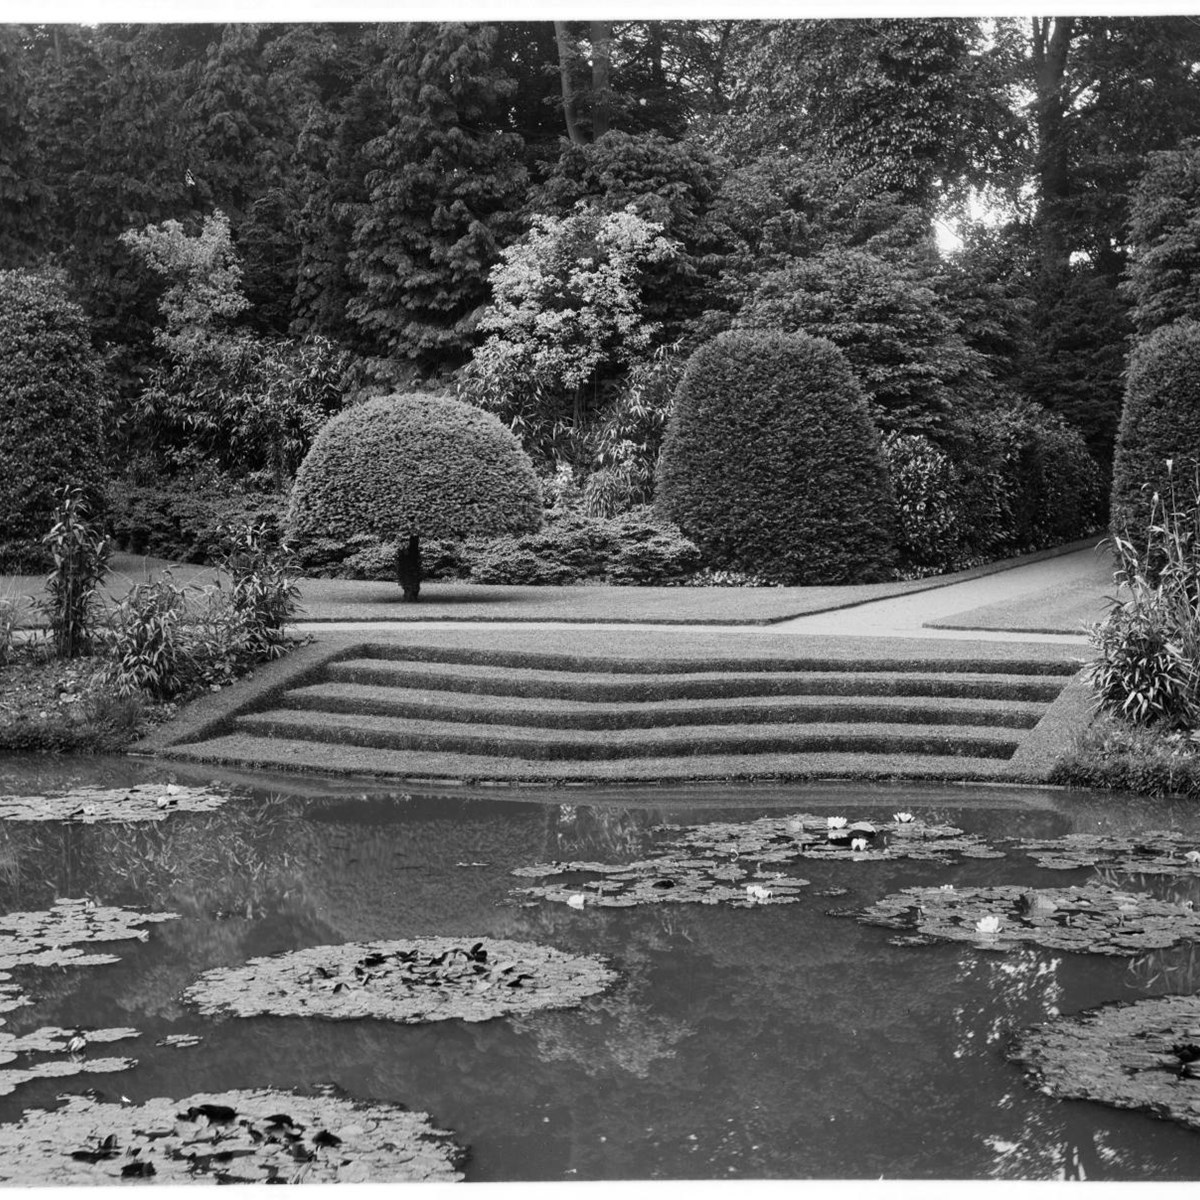 Archive black and white photograph of steps leading down to a pond with several groups of